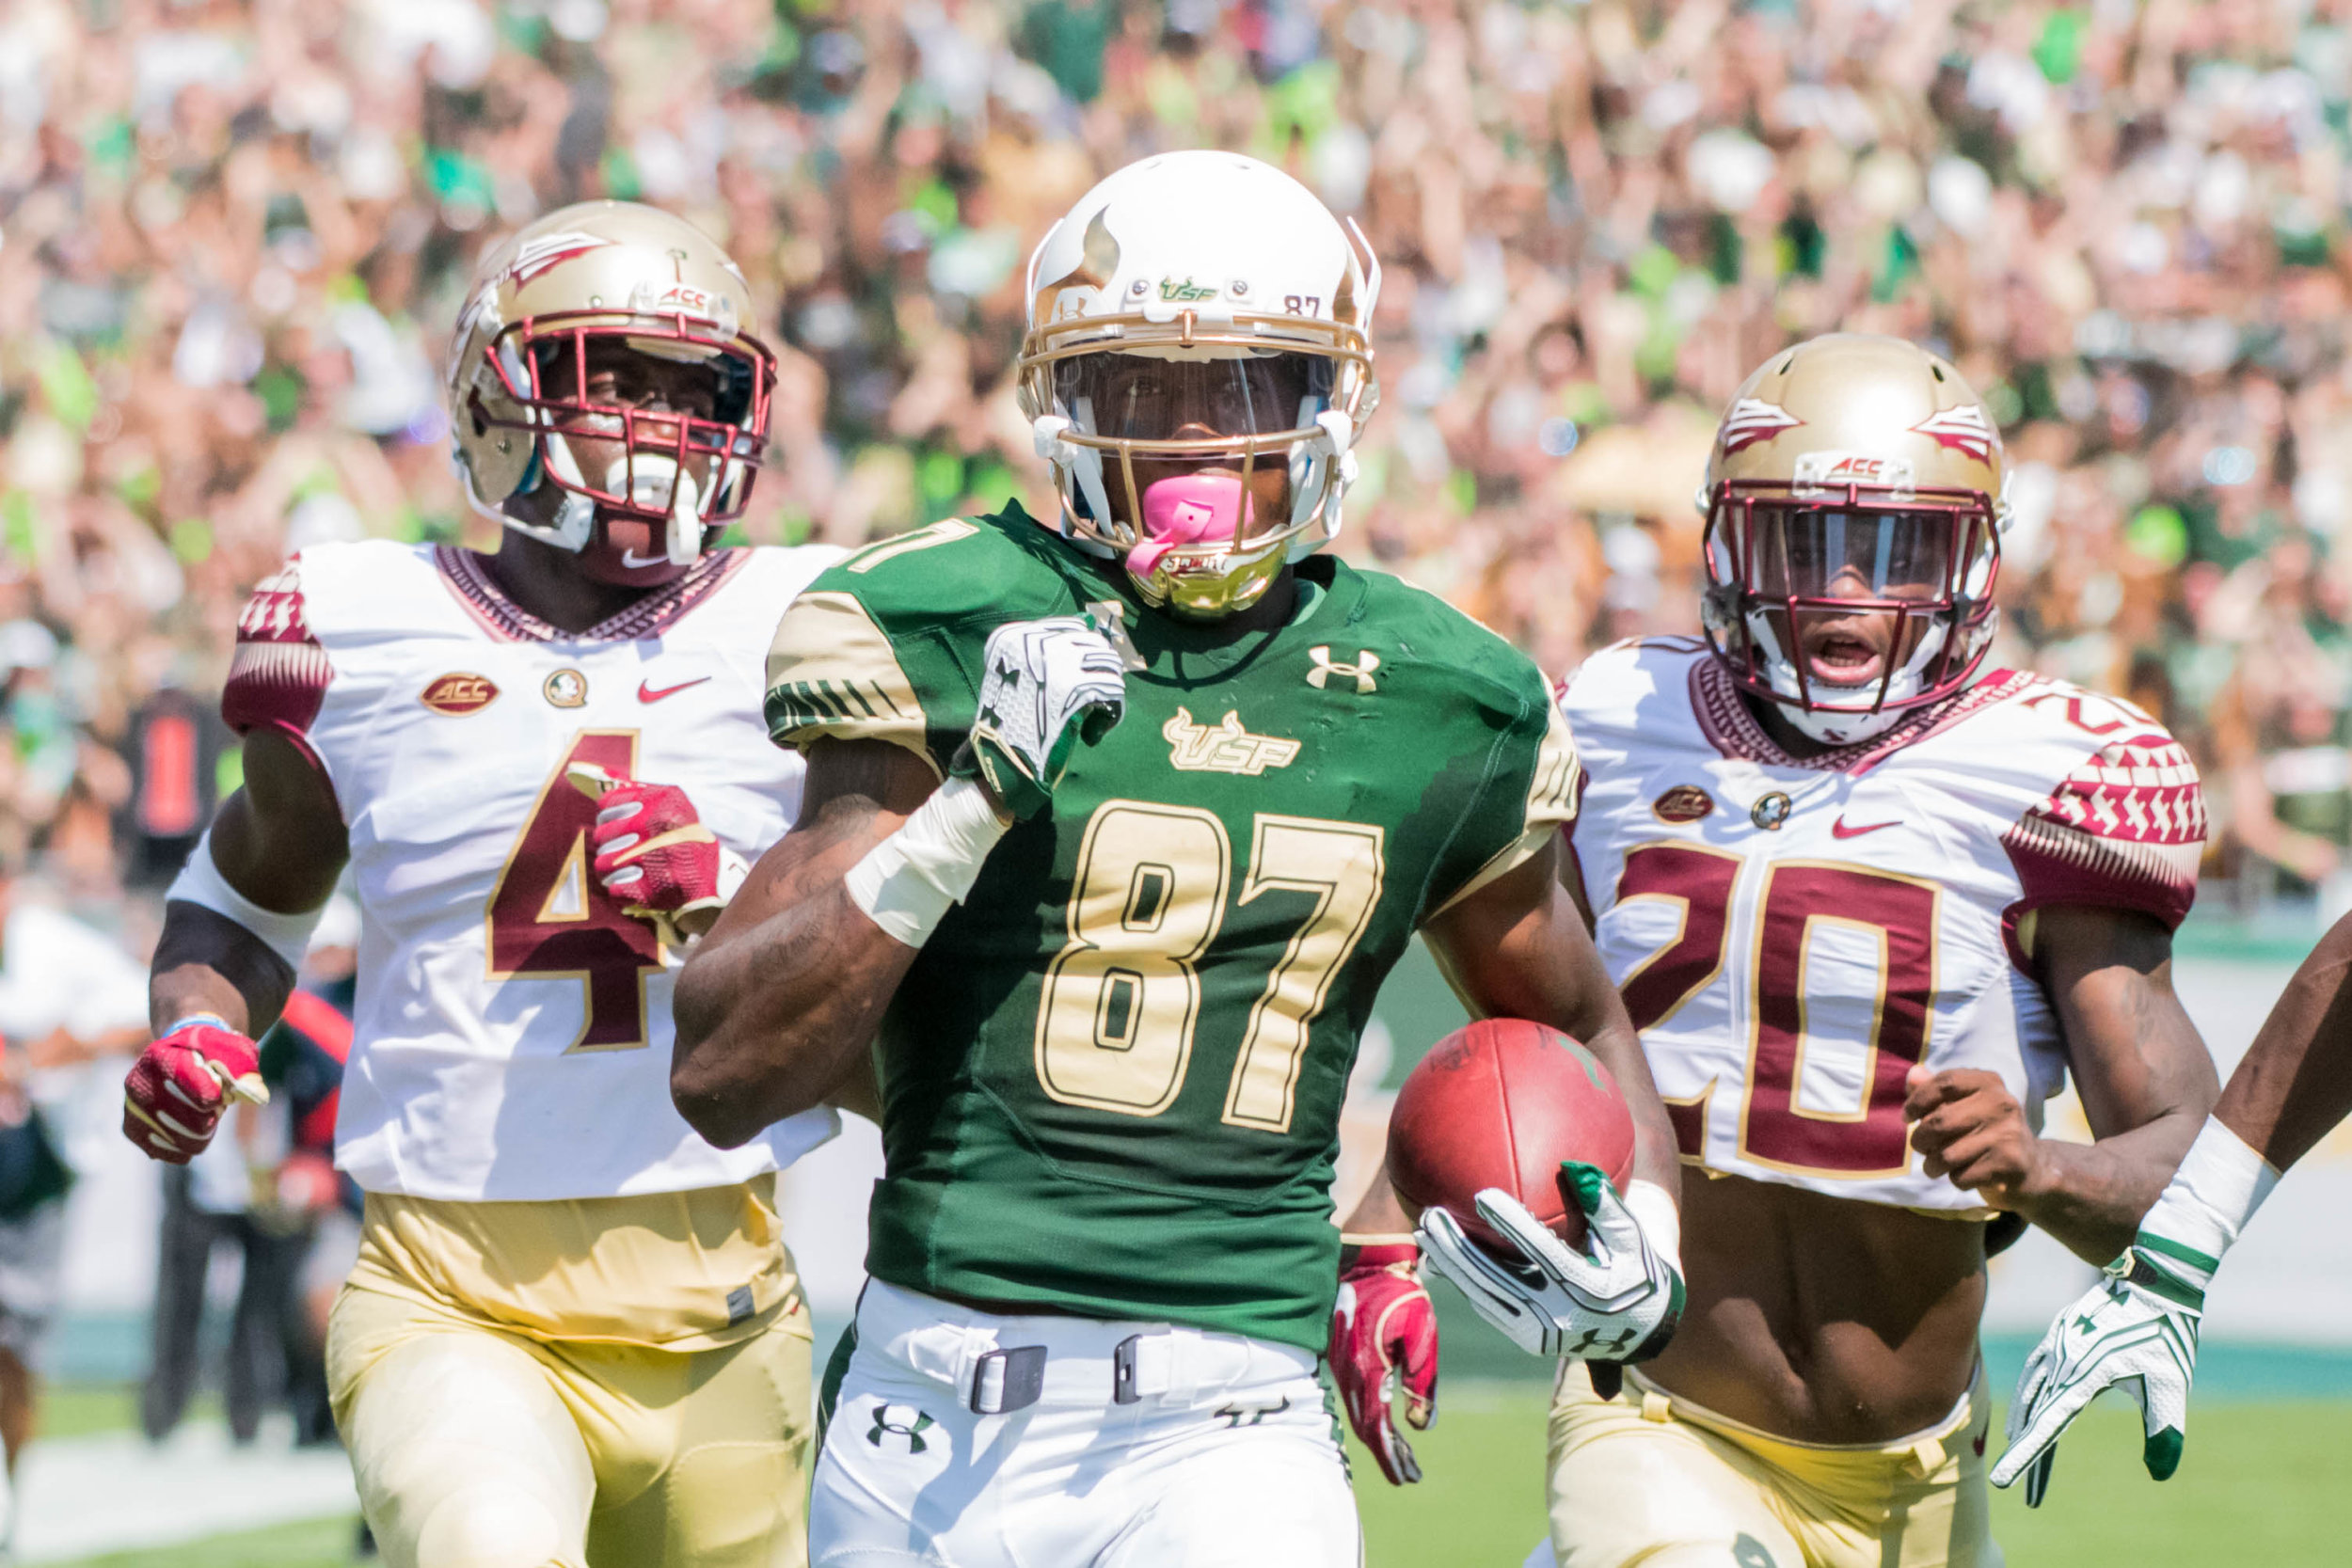 Rodney Adams as he races towards the end zone on a game opening 84-yard touchdown pass.